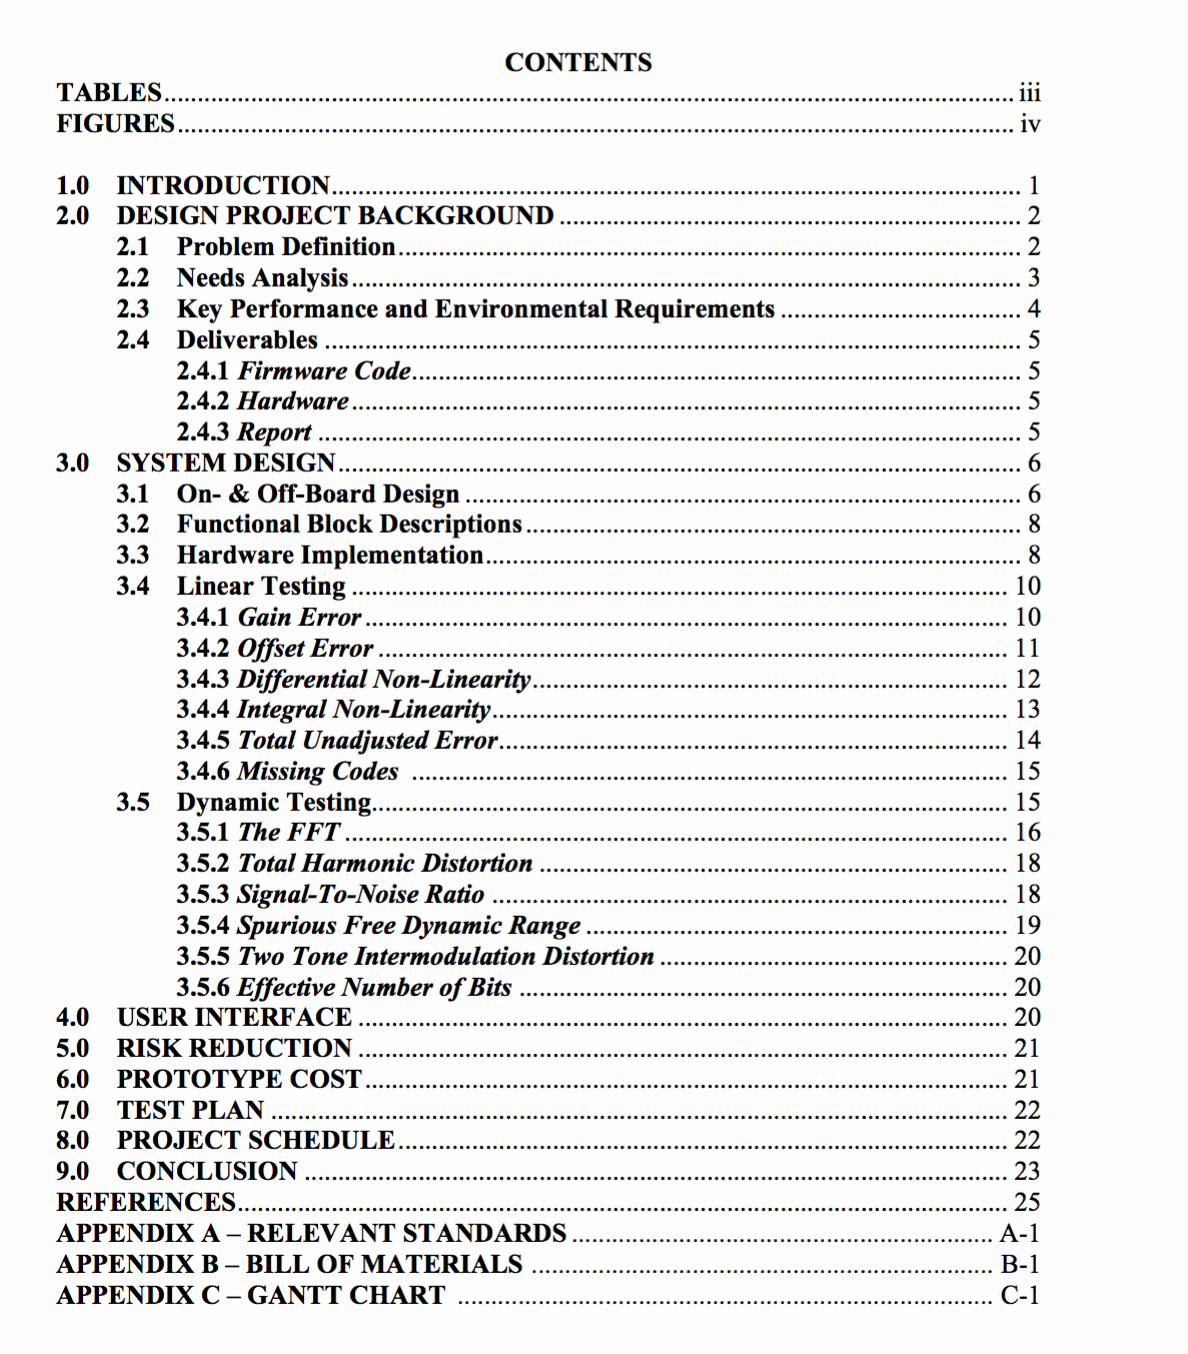 Sample Table Of Contents format Elegant formatting How Do I Change My Table Of Contents to Look